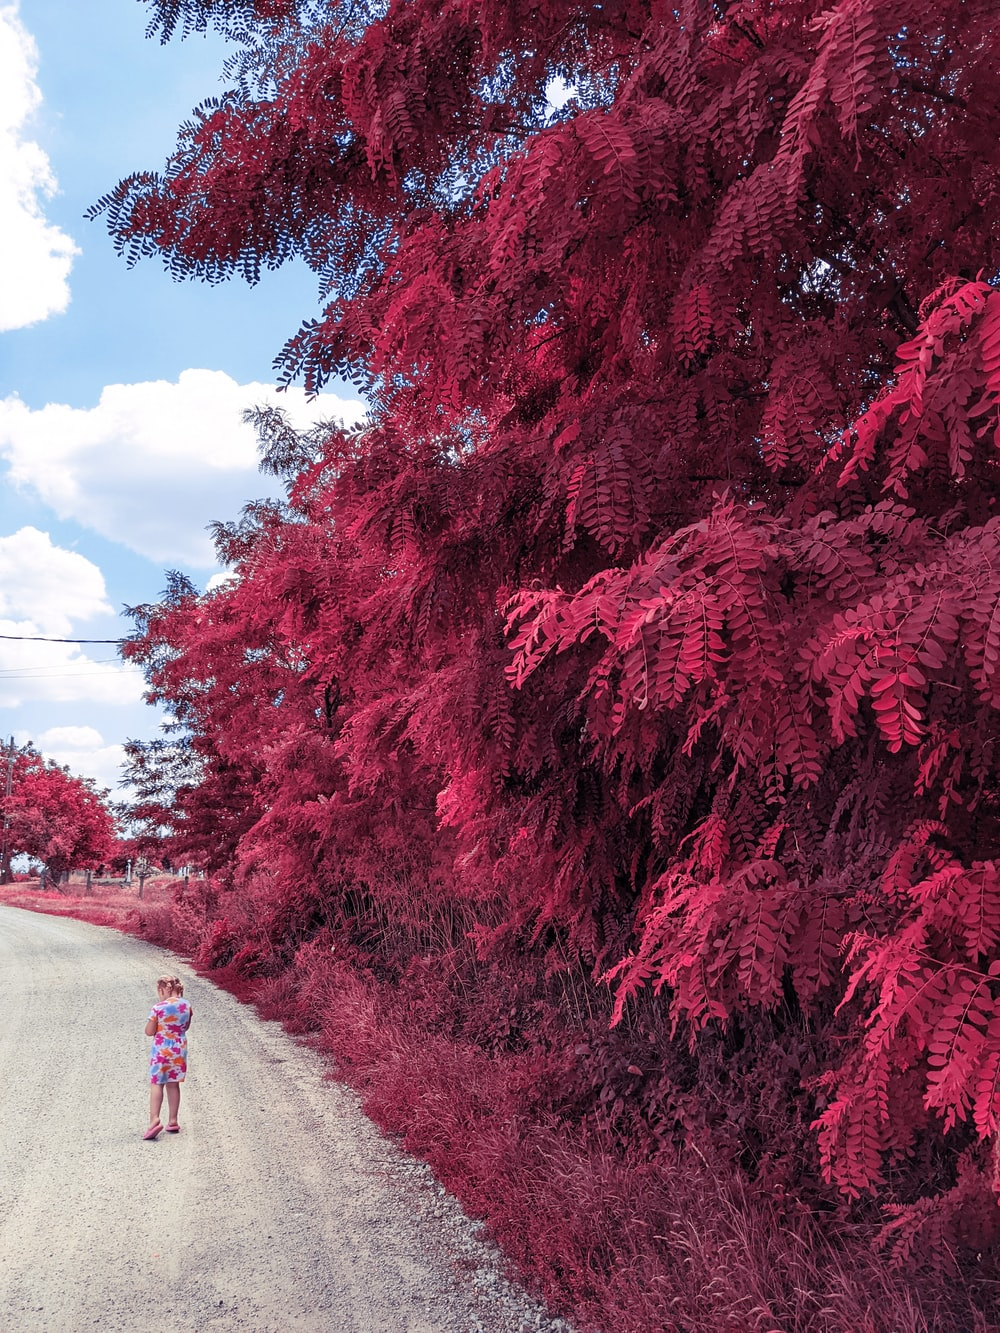 red leaf trees beside road during daytime